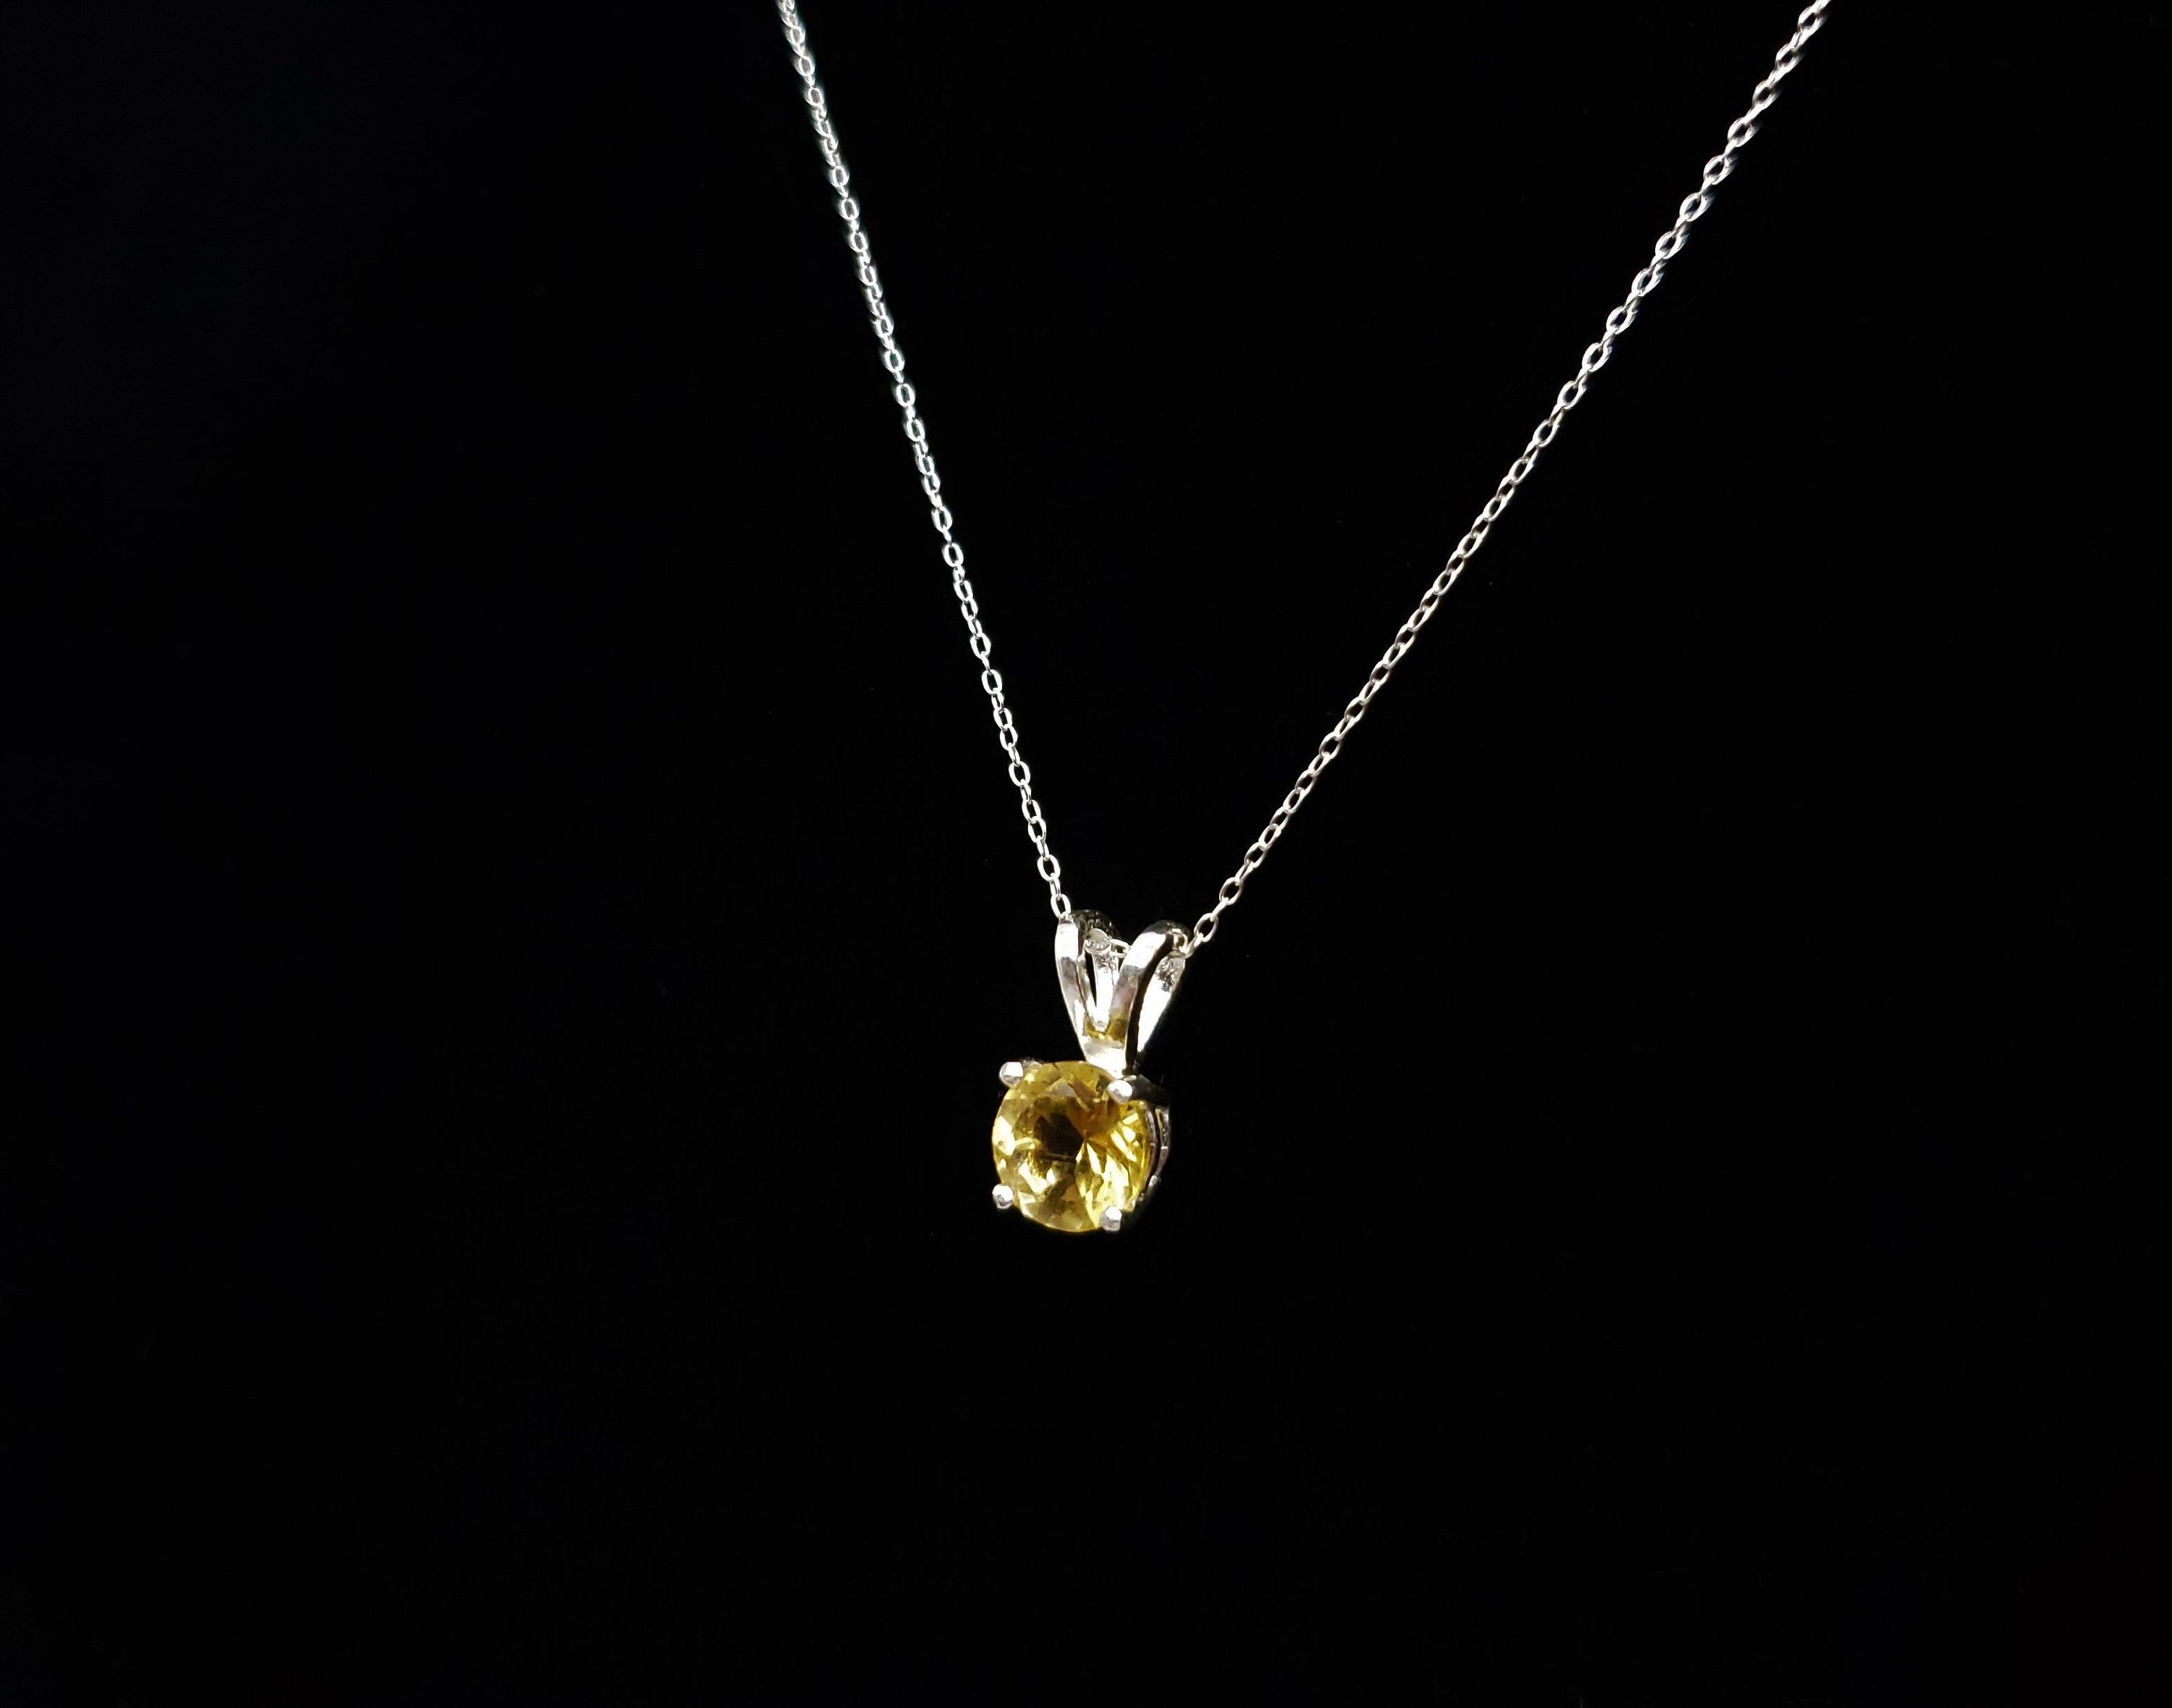 Citrine Pendant Necklace Yellow Gemstone Jewelry Sterling Silver Chain  8mm Round Citrine Cabochon